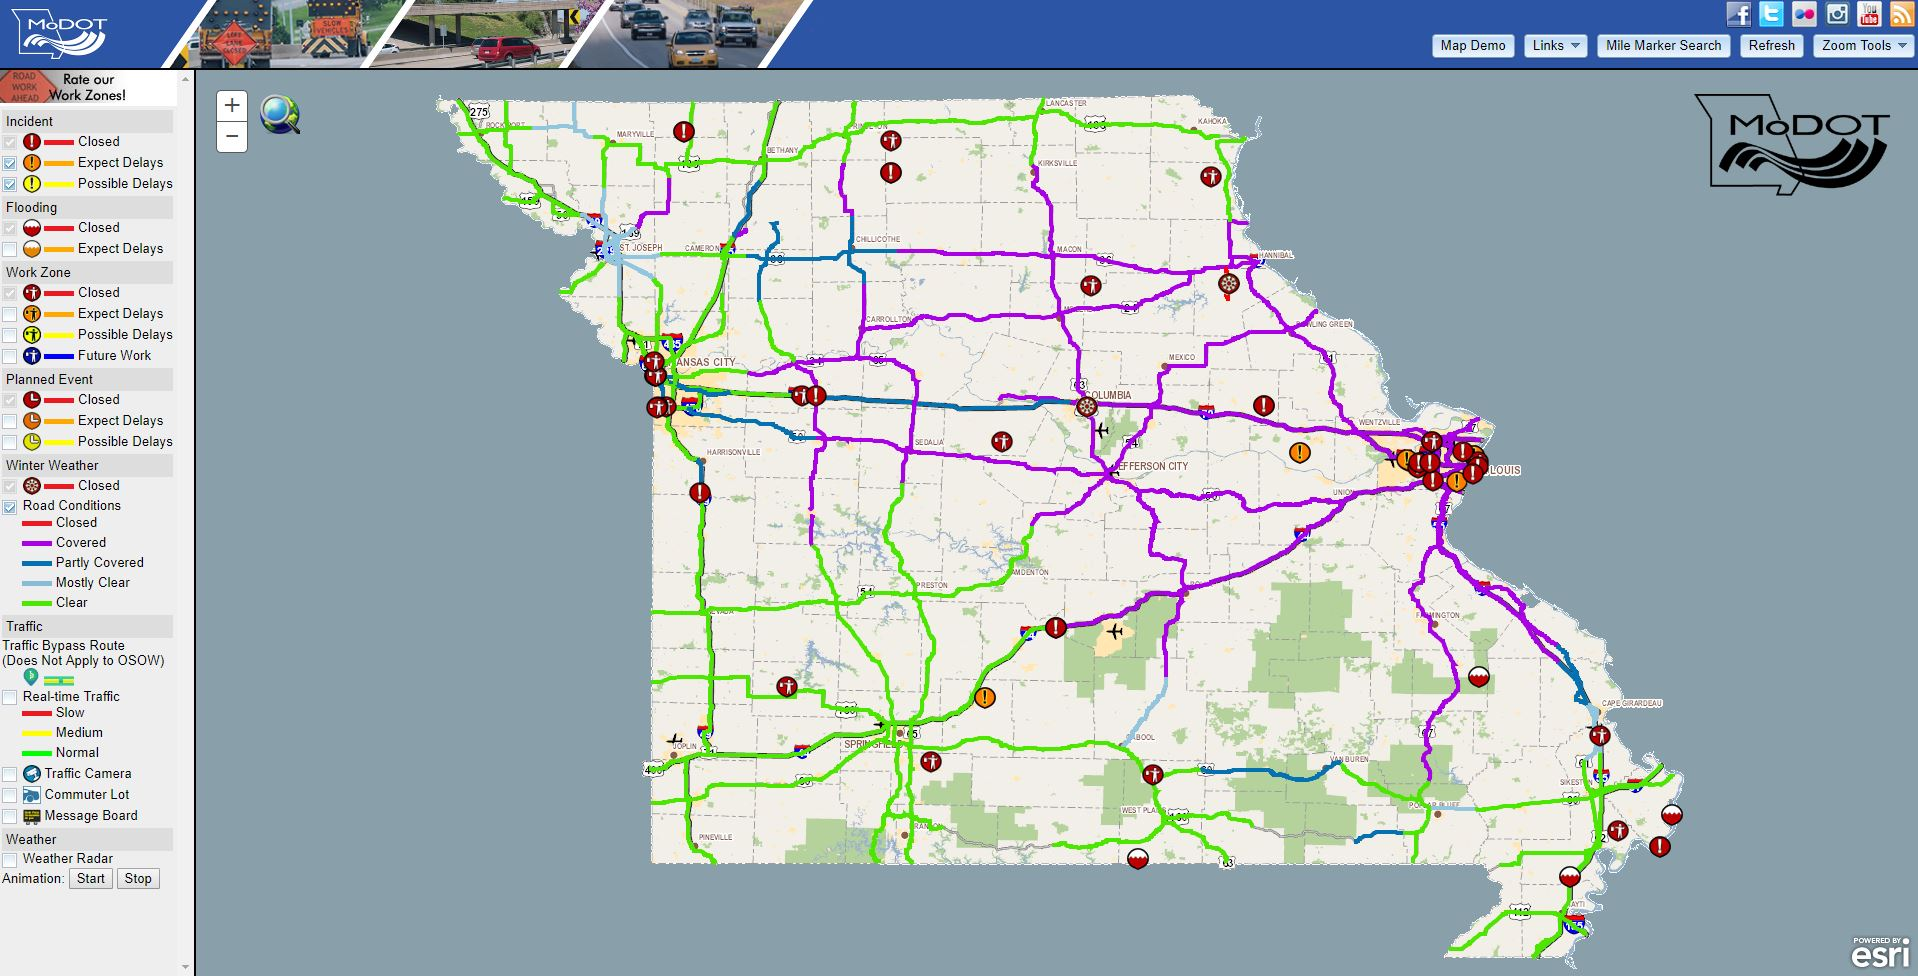 Major Roadways Shut Down in Missouri